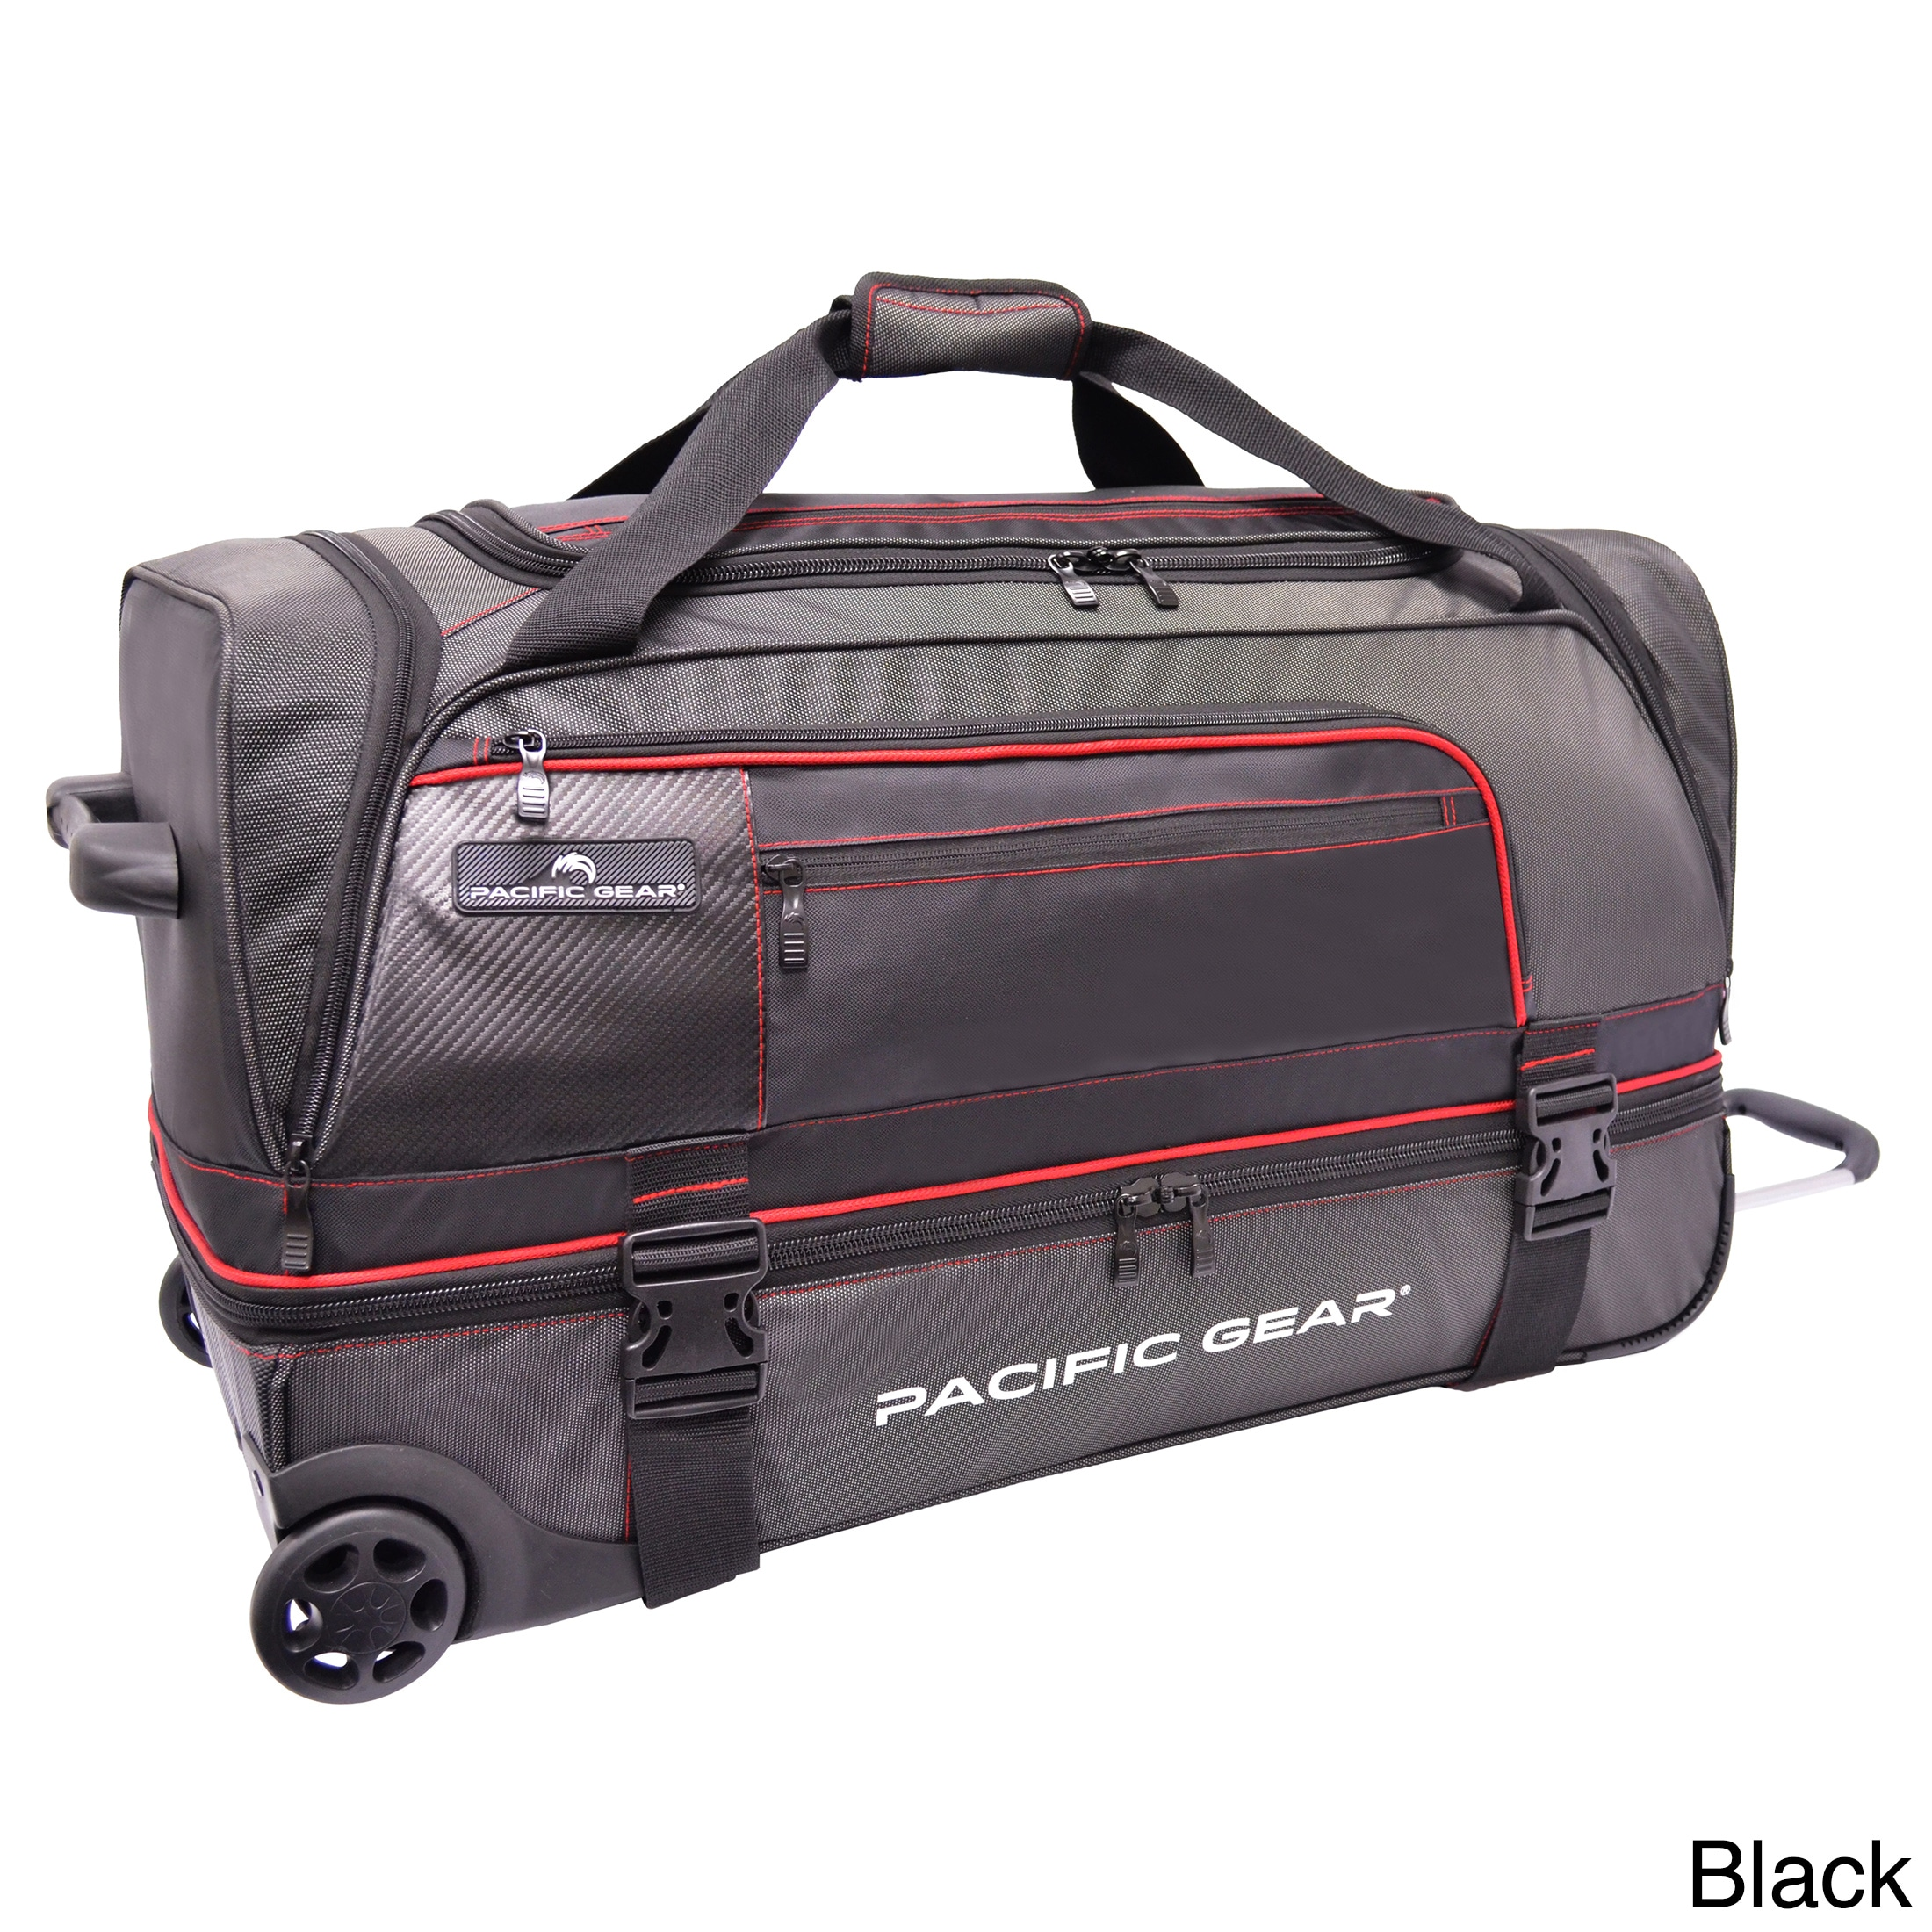 Shop Pacific Gear by Traveler s Choice Drop Zone 30-inch Drop-bottom  Rolling Upright Duffel Bag - Free Shipping Today - Overstock - 8238253 665bb579c4e12